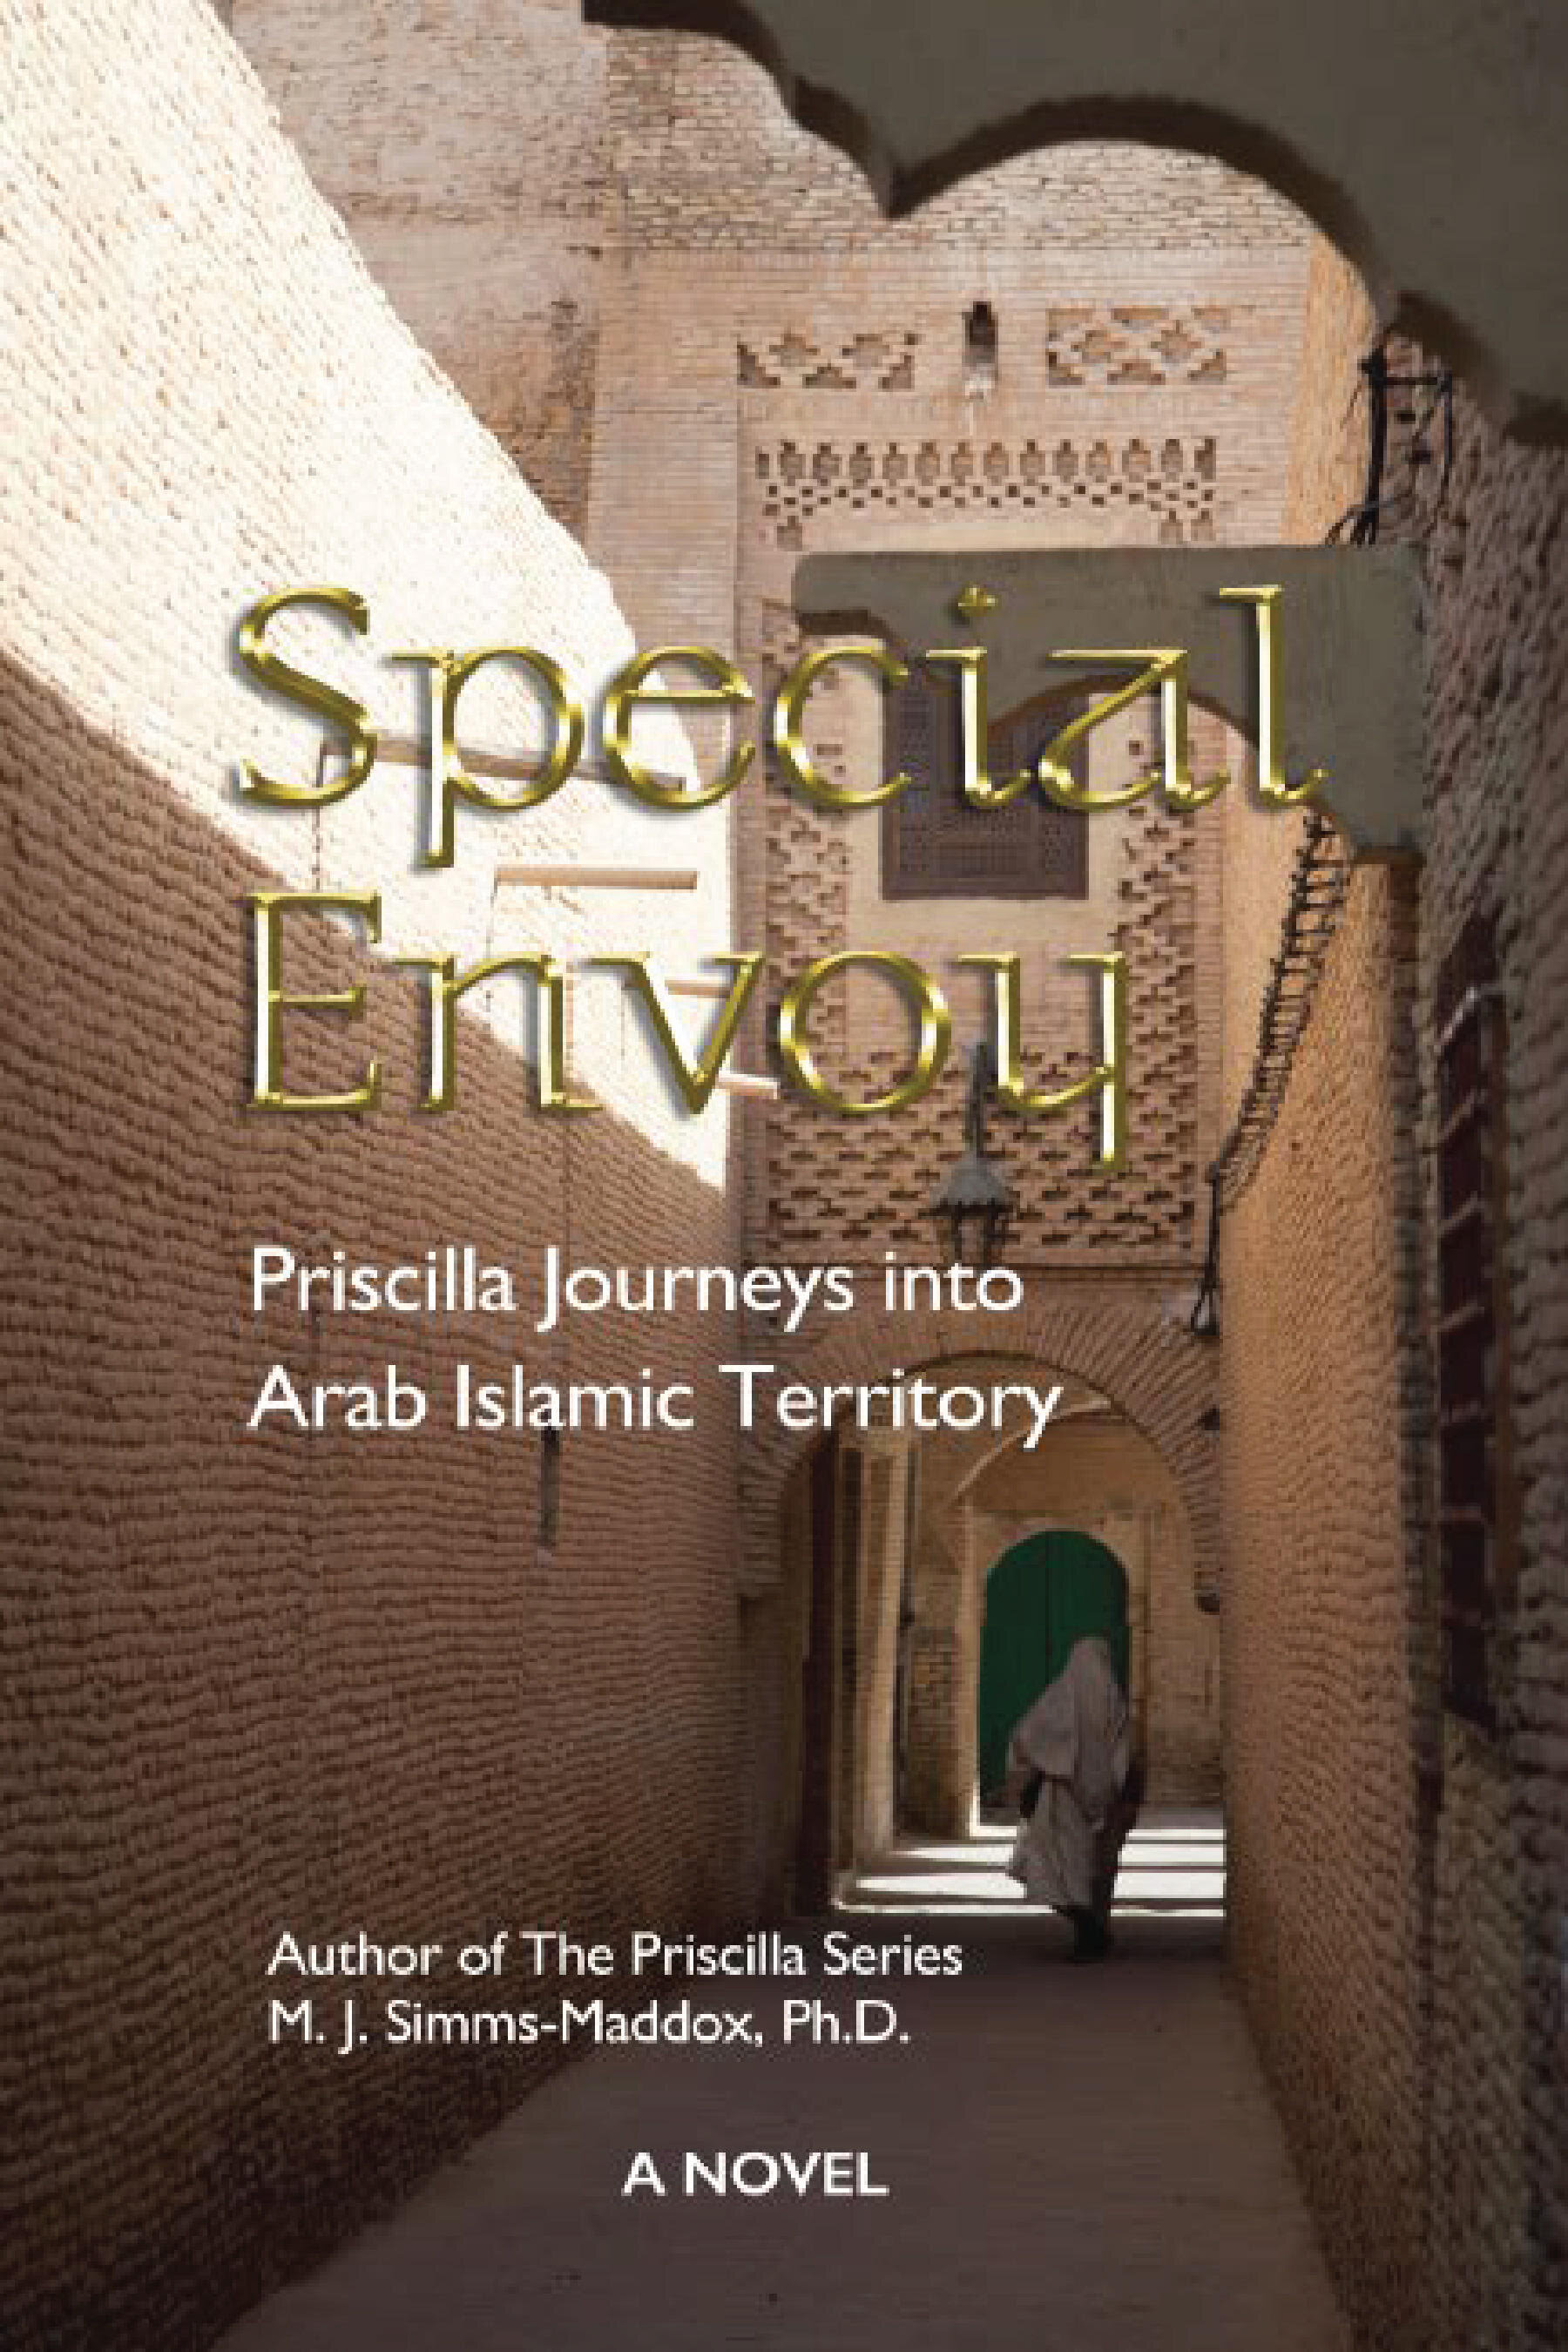 SPECIALENVOY - Set in the winter 1989 in the American Midwest, New England and the Middle East, a suspense-filled thriller, Special Envoy, delves behind-the-scenes into the making of American foreign policy. When the newly-inaugurated president commissions Priscilla as a